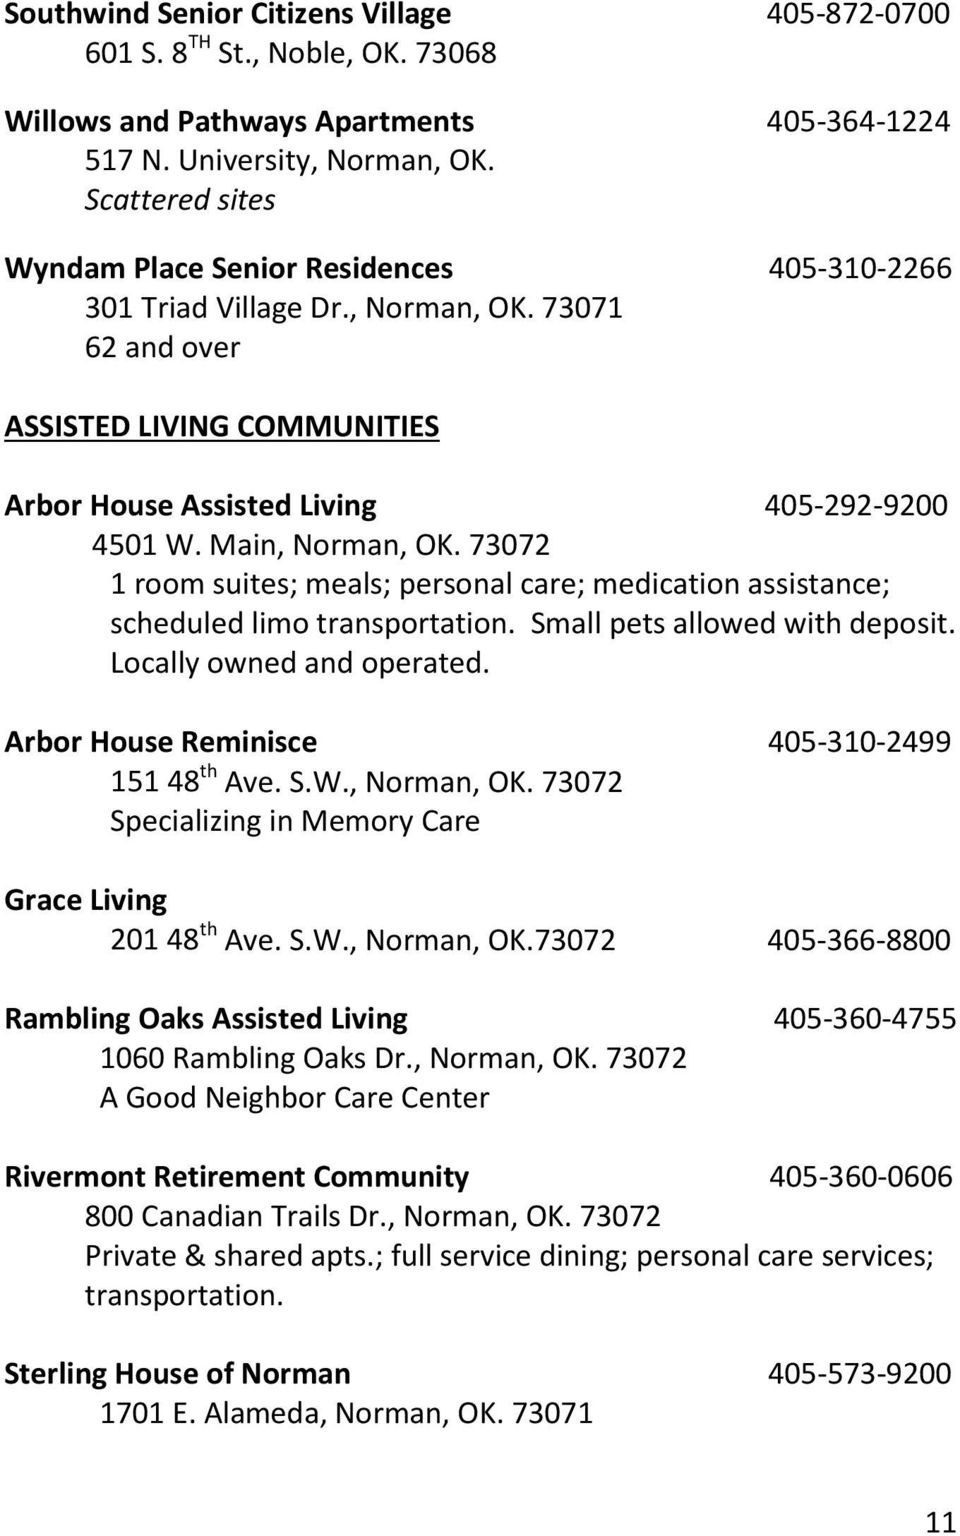 Main, Norman, OK. 73072 1 room suites; meals; personal care; medication assistance; scheduled limo transportation. Small pets allowed with deposit. Locally owned and operated.